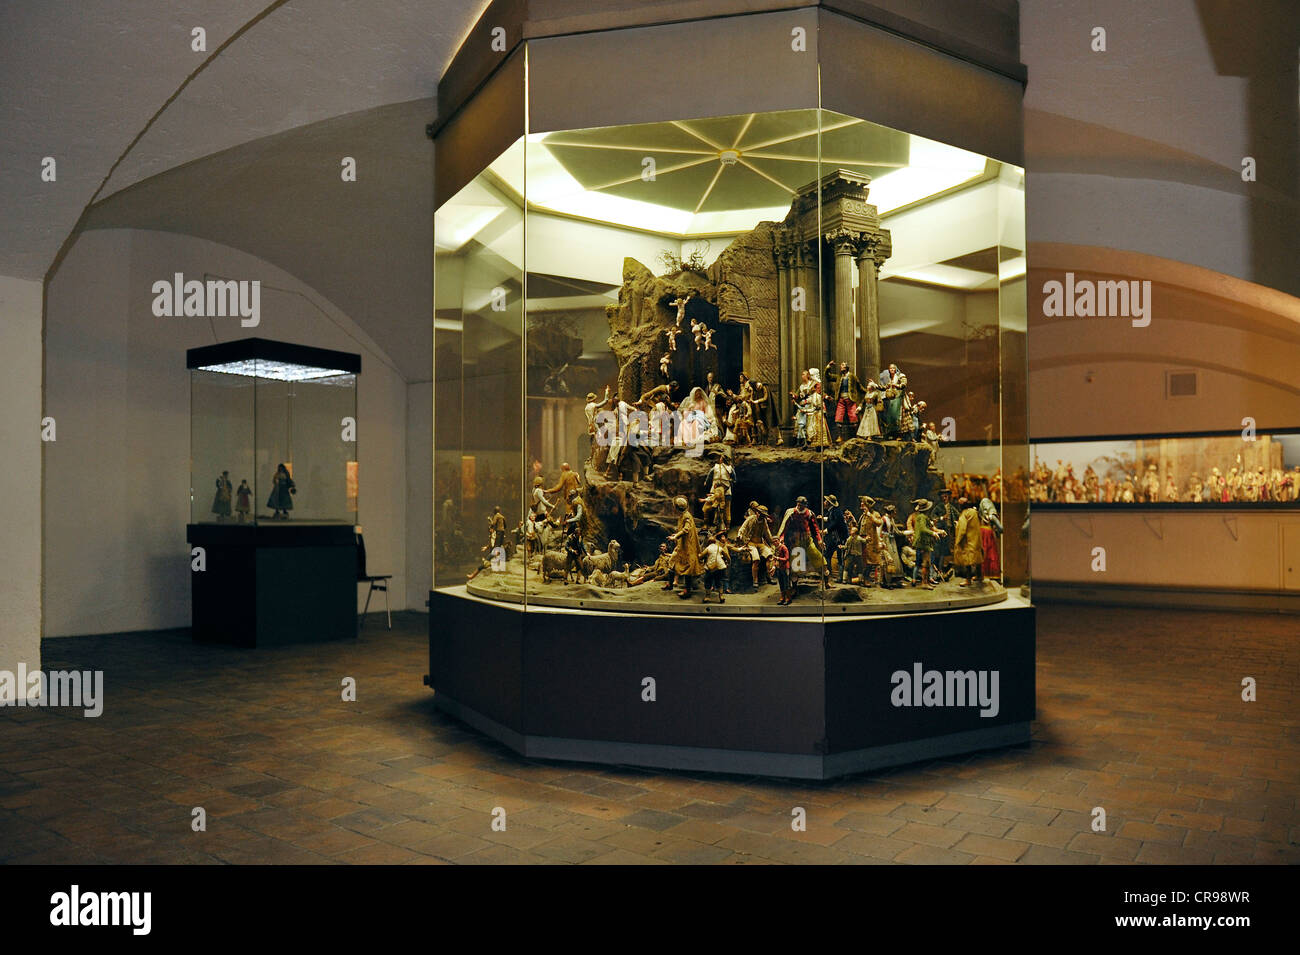 Crib collection, large Nativity Scene from circa 1850, Bavarian National Museum, Munich, Bavaria, Germany, Europe - Stock Image